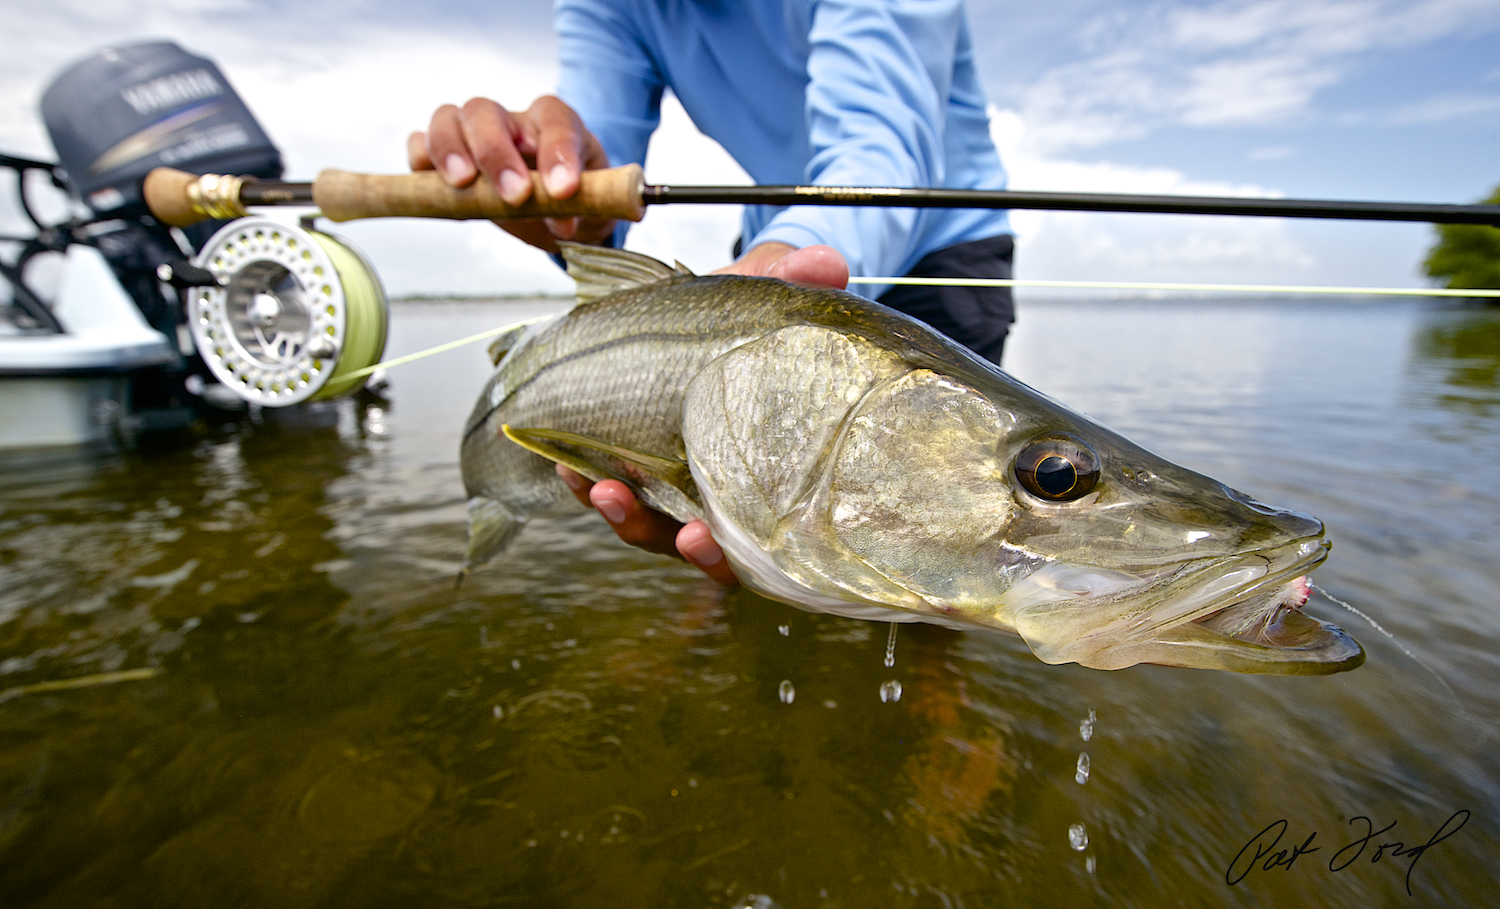 The florida everglades by way of flamingo with pat ford for Fishing for snook